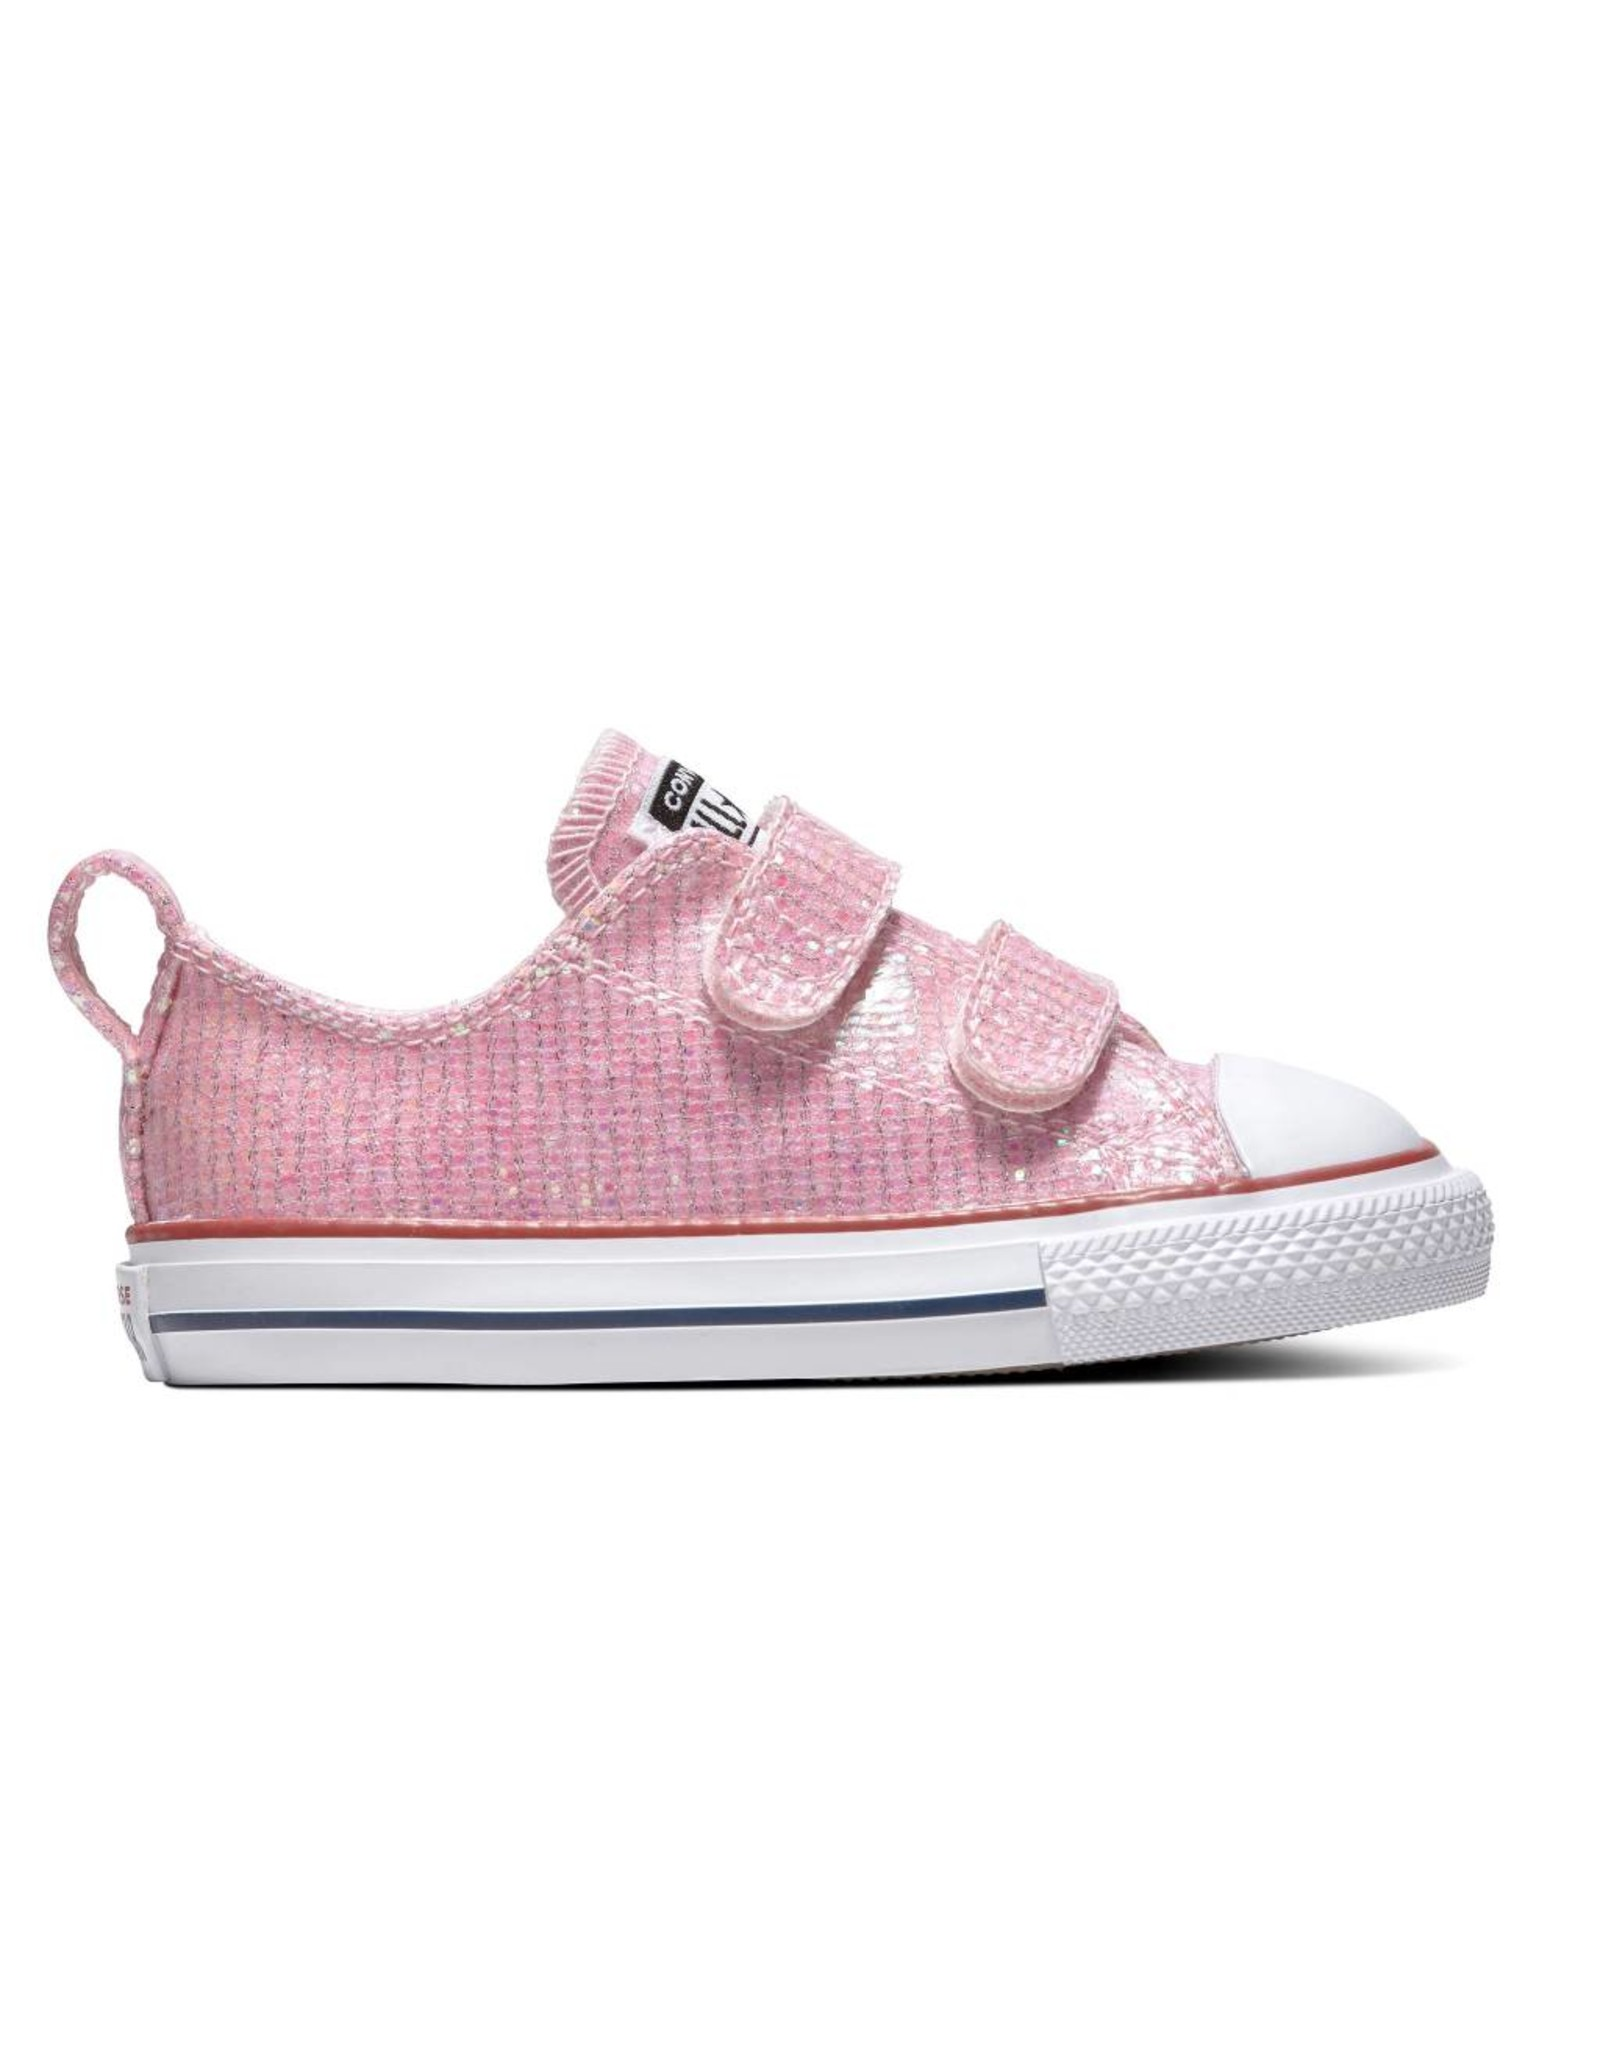 CONVERSE CHUCK TAYLOR ALL STAR 2V OX PINK FOAM/ENAMEL RED/WHITE CKVP-763550C